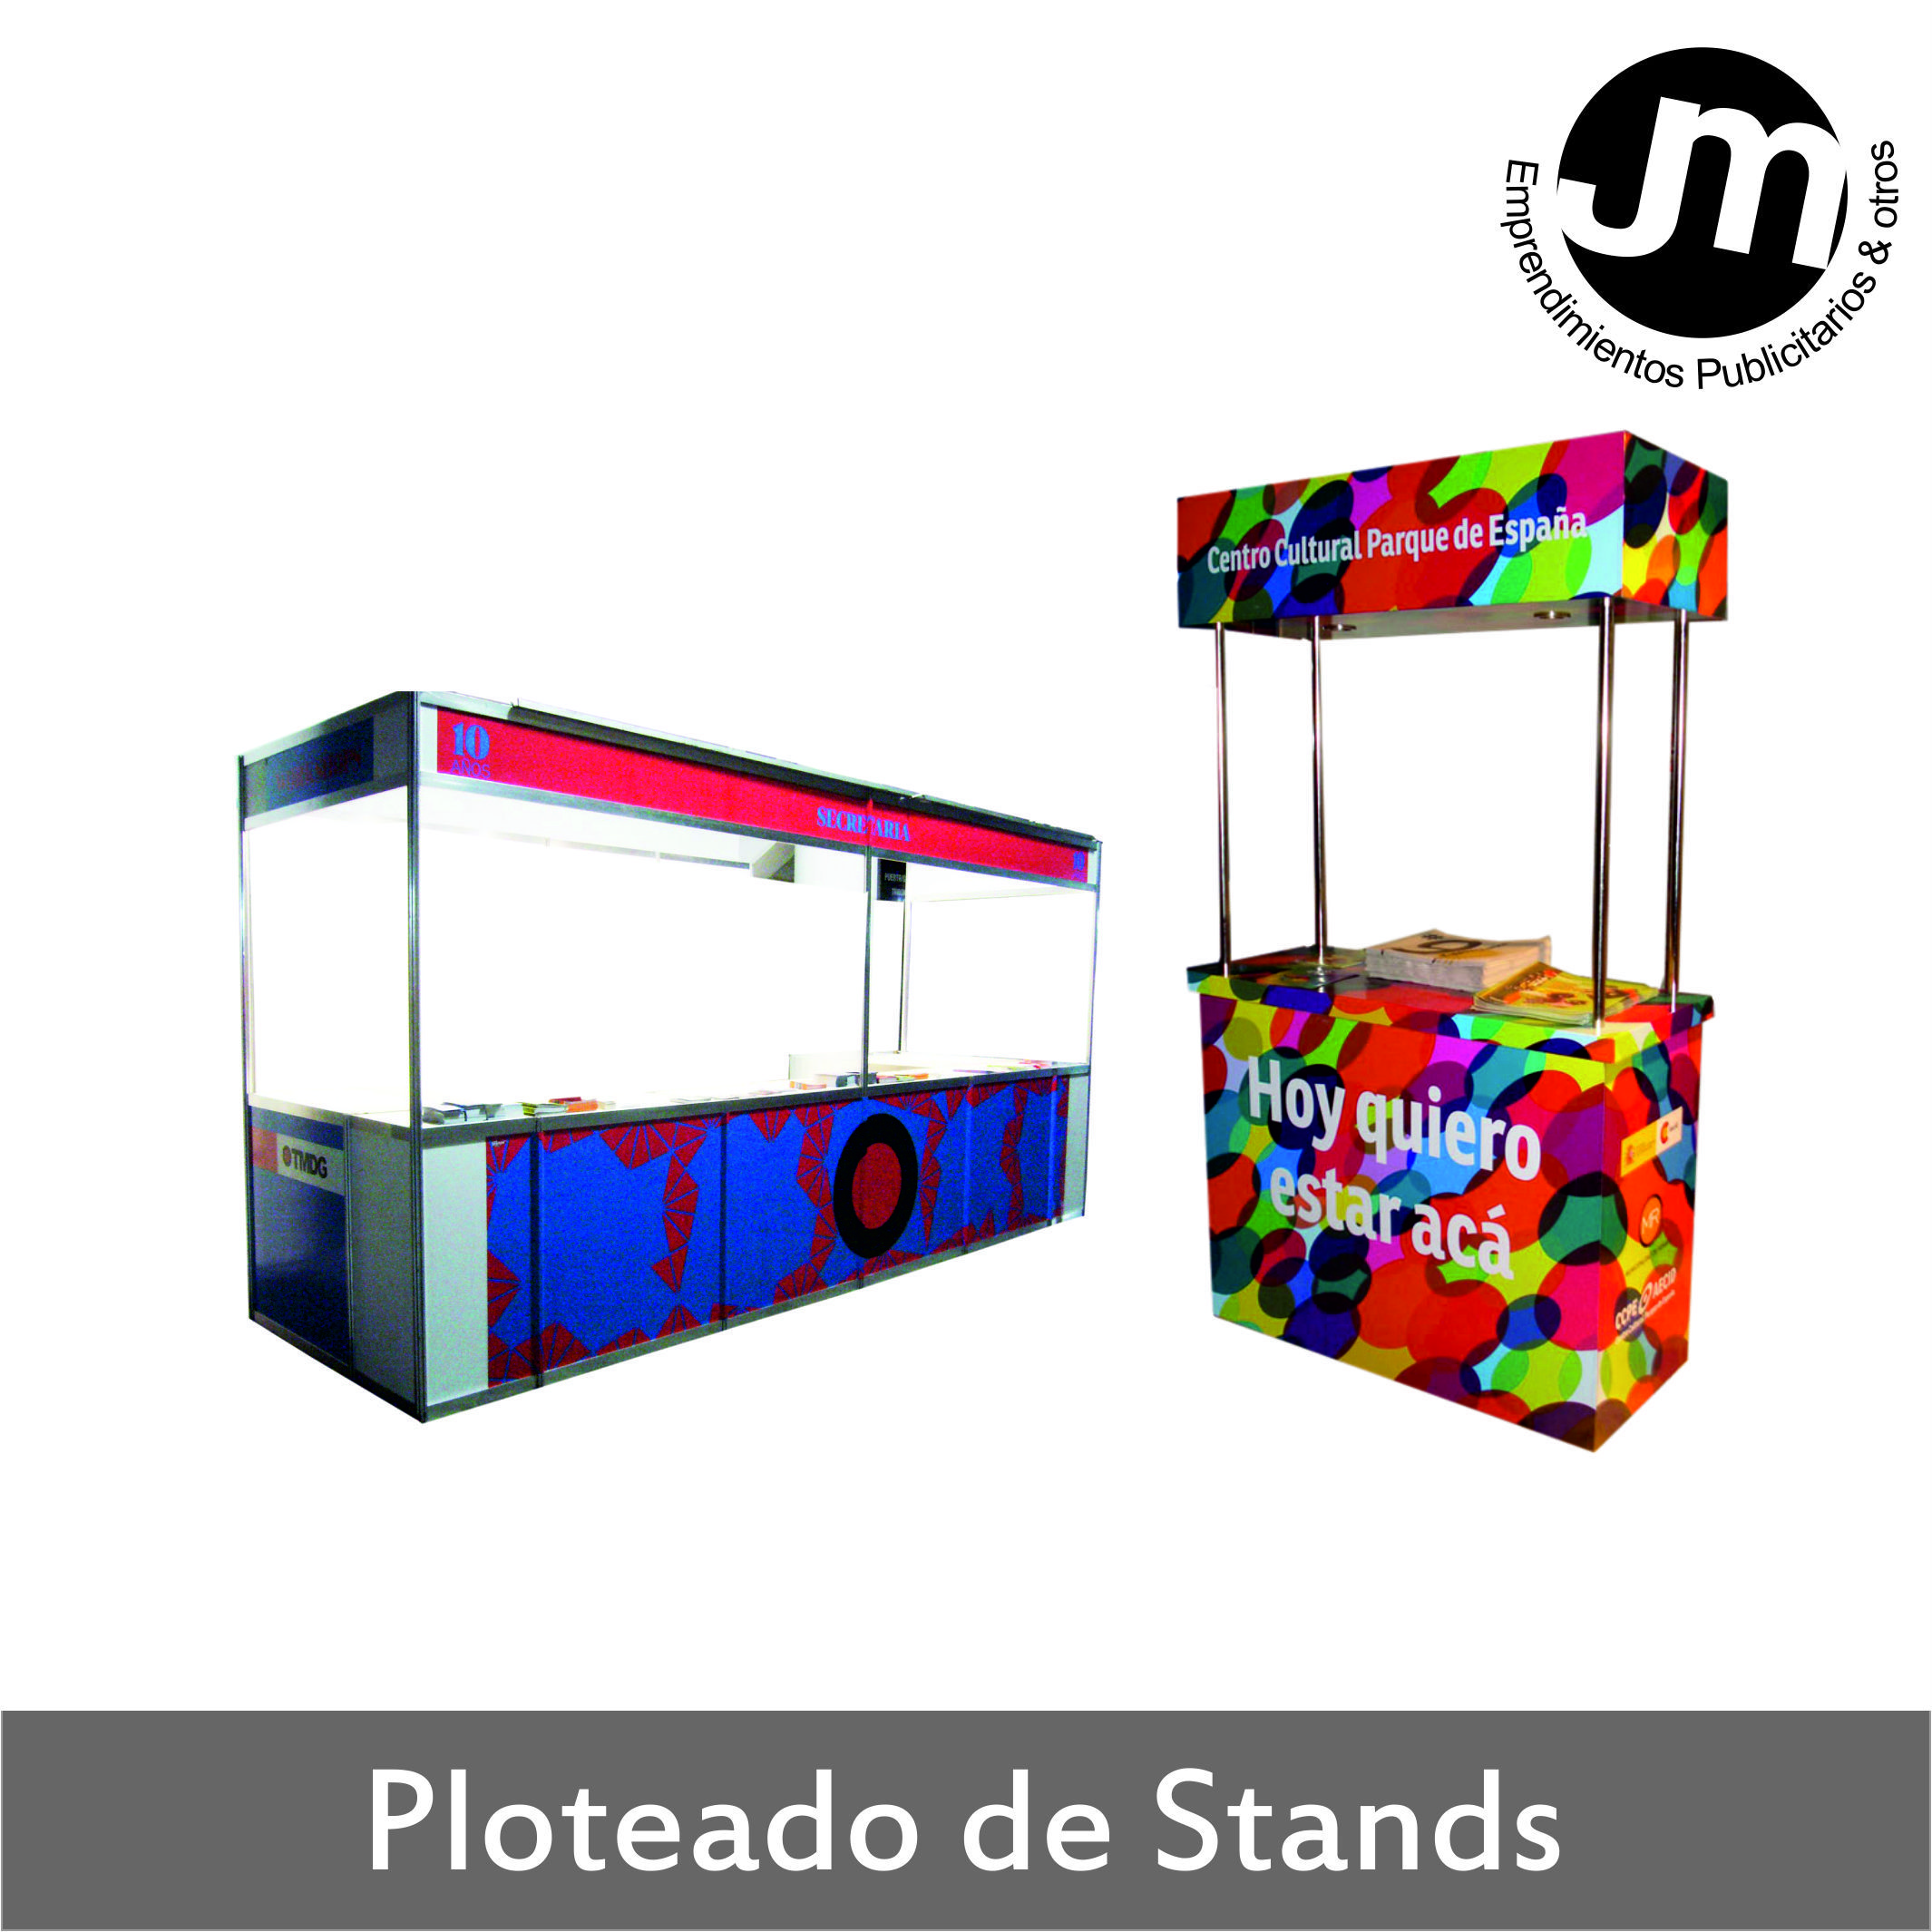 Ploteado de Stands